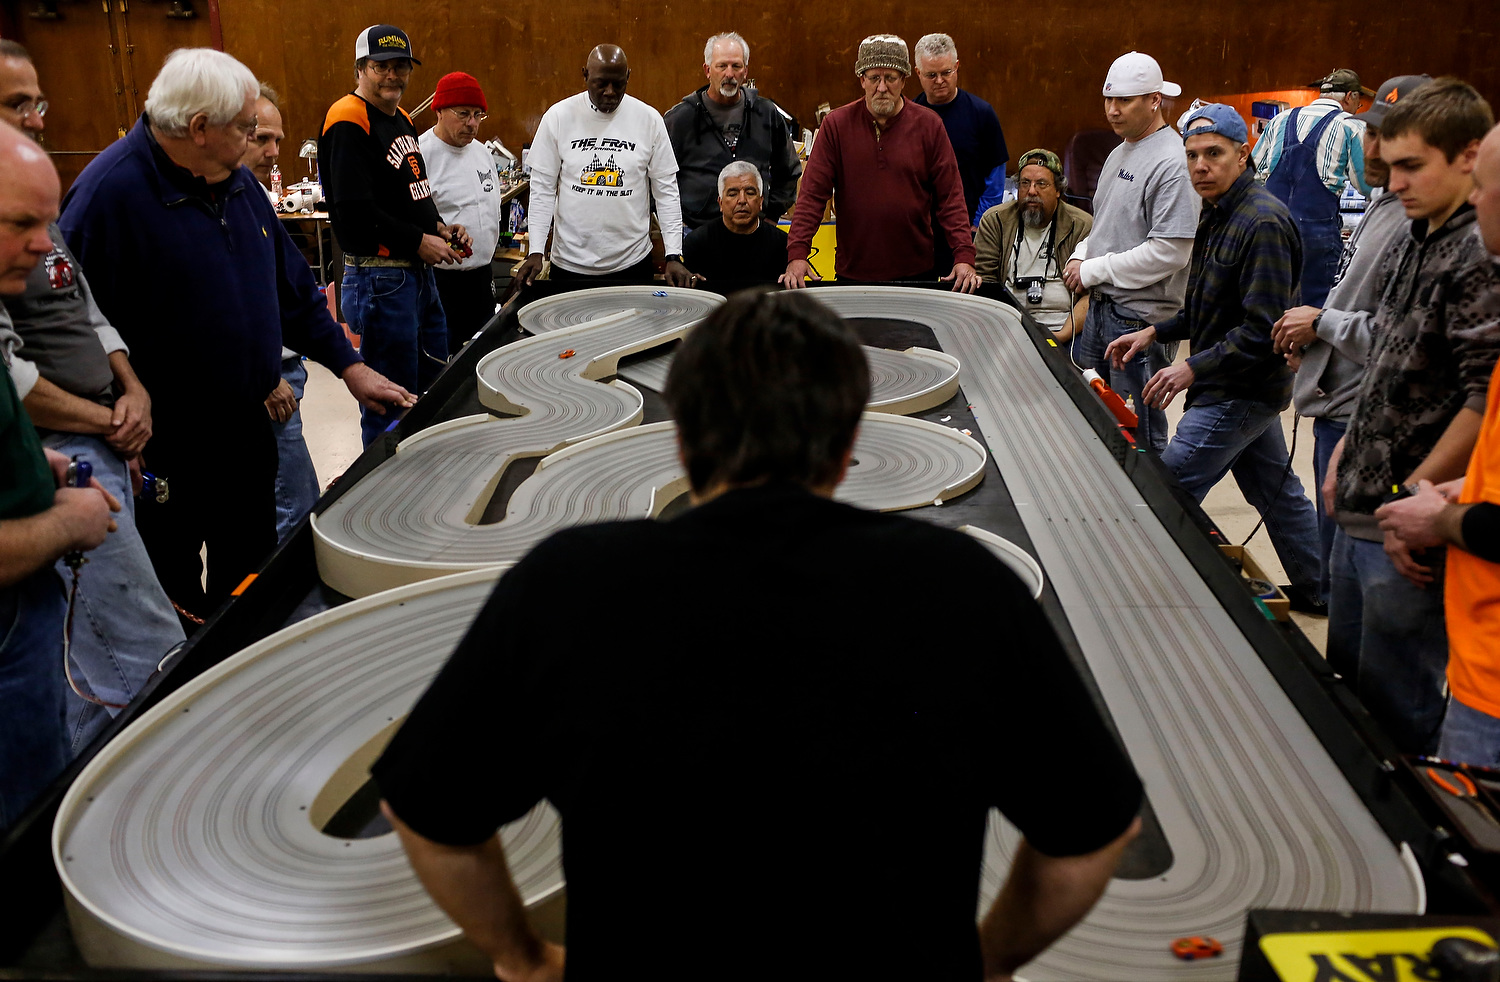 98 professional slot car racers are taking part in the The Fray in